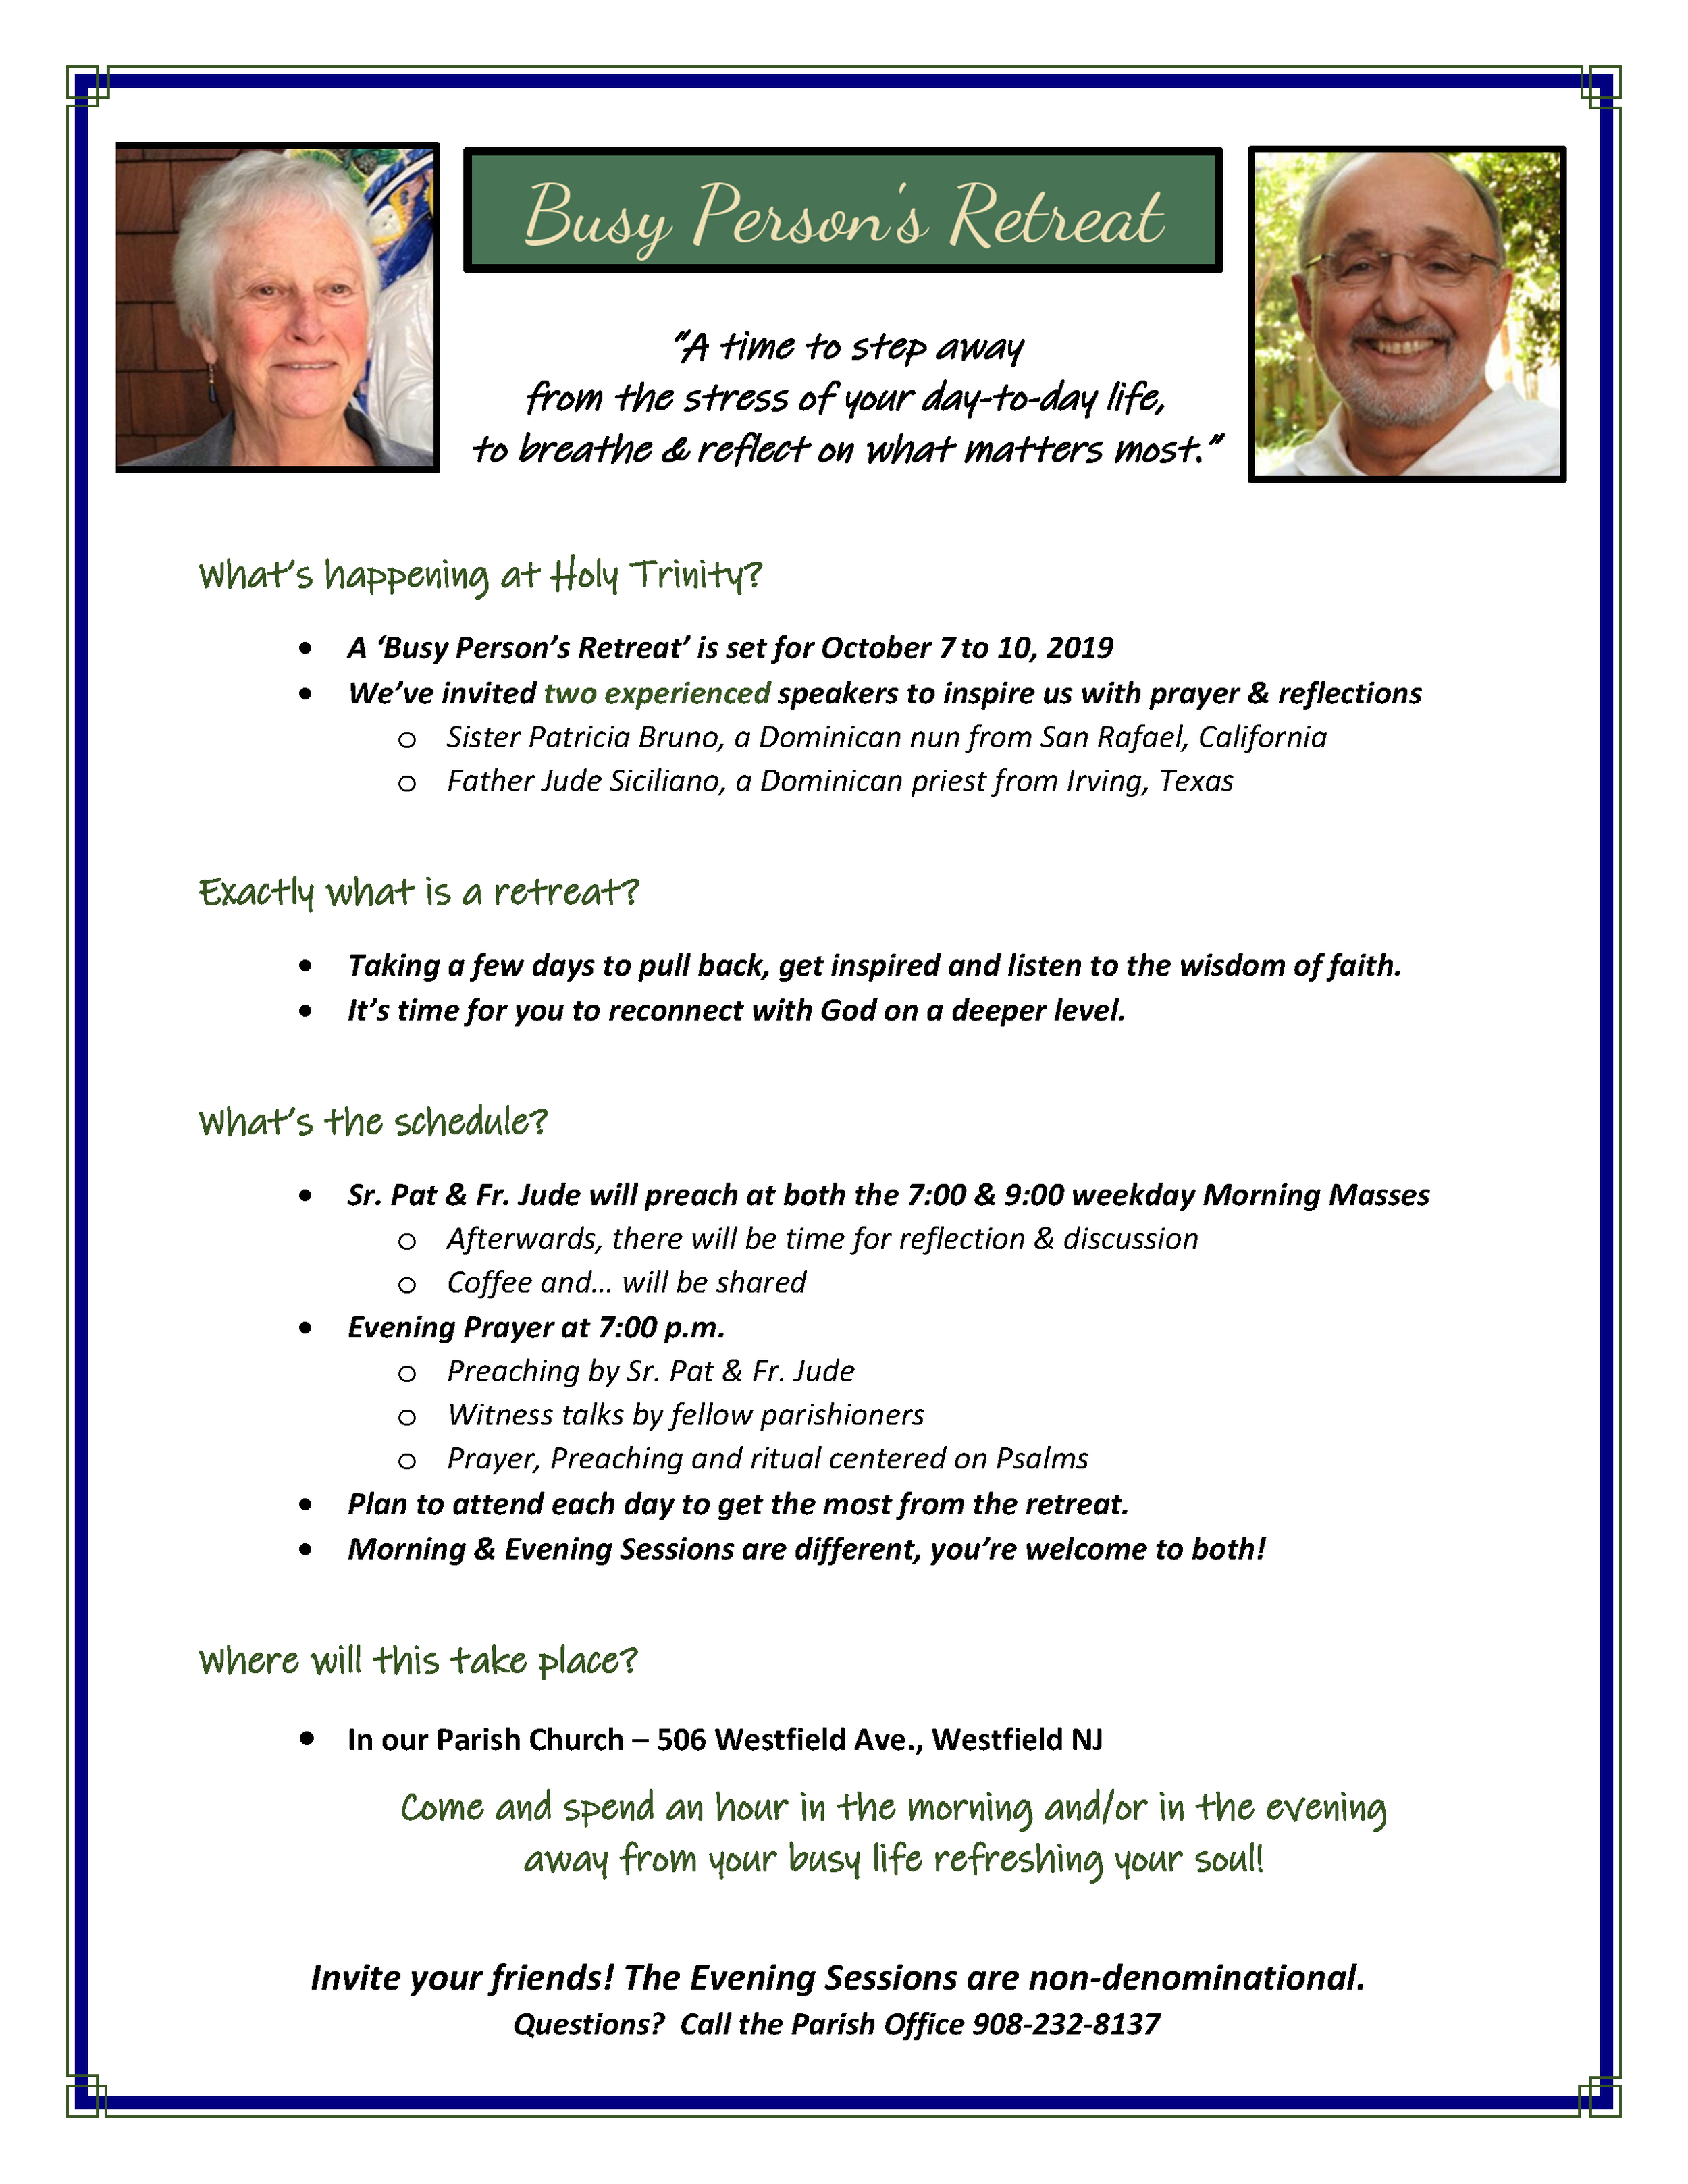 HT Retreat Flyer for Sep 29.png